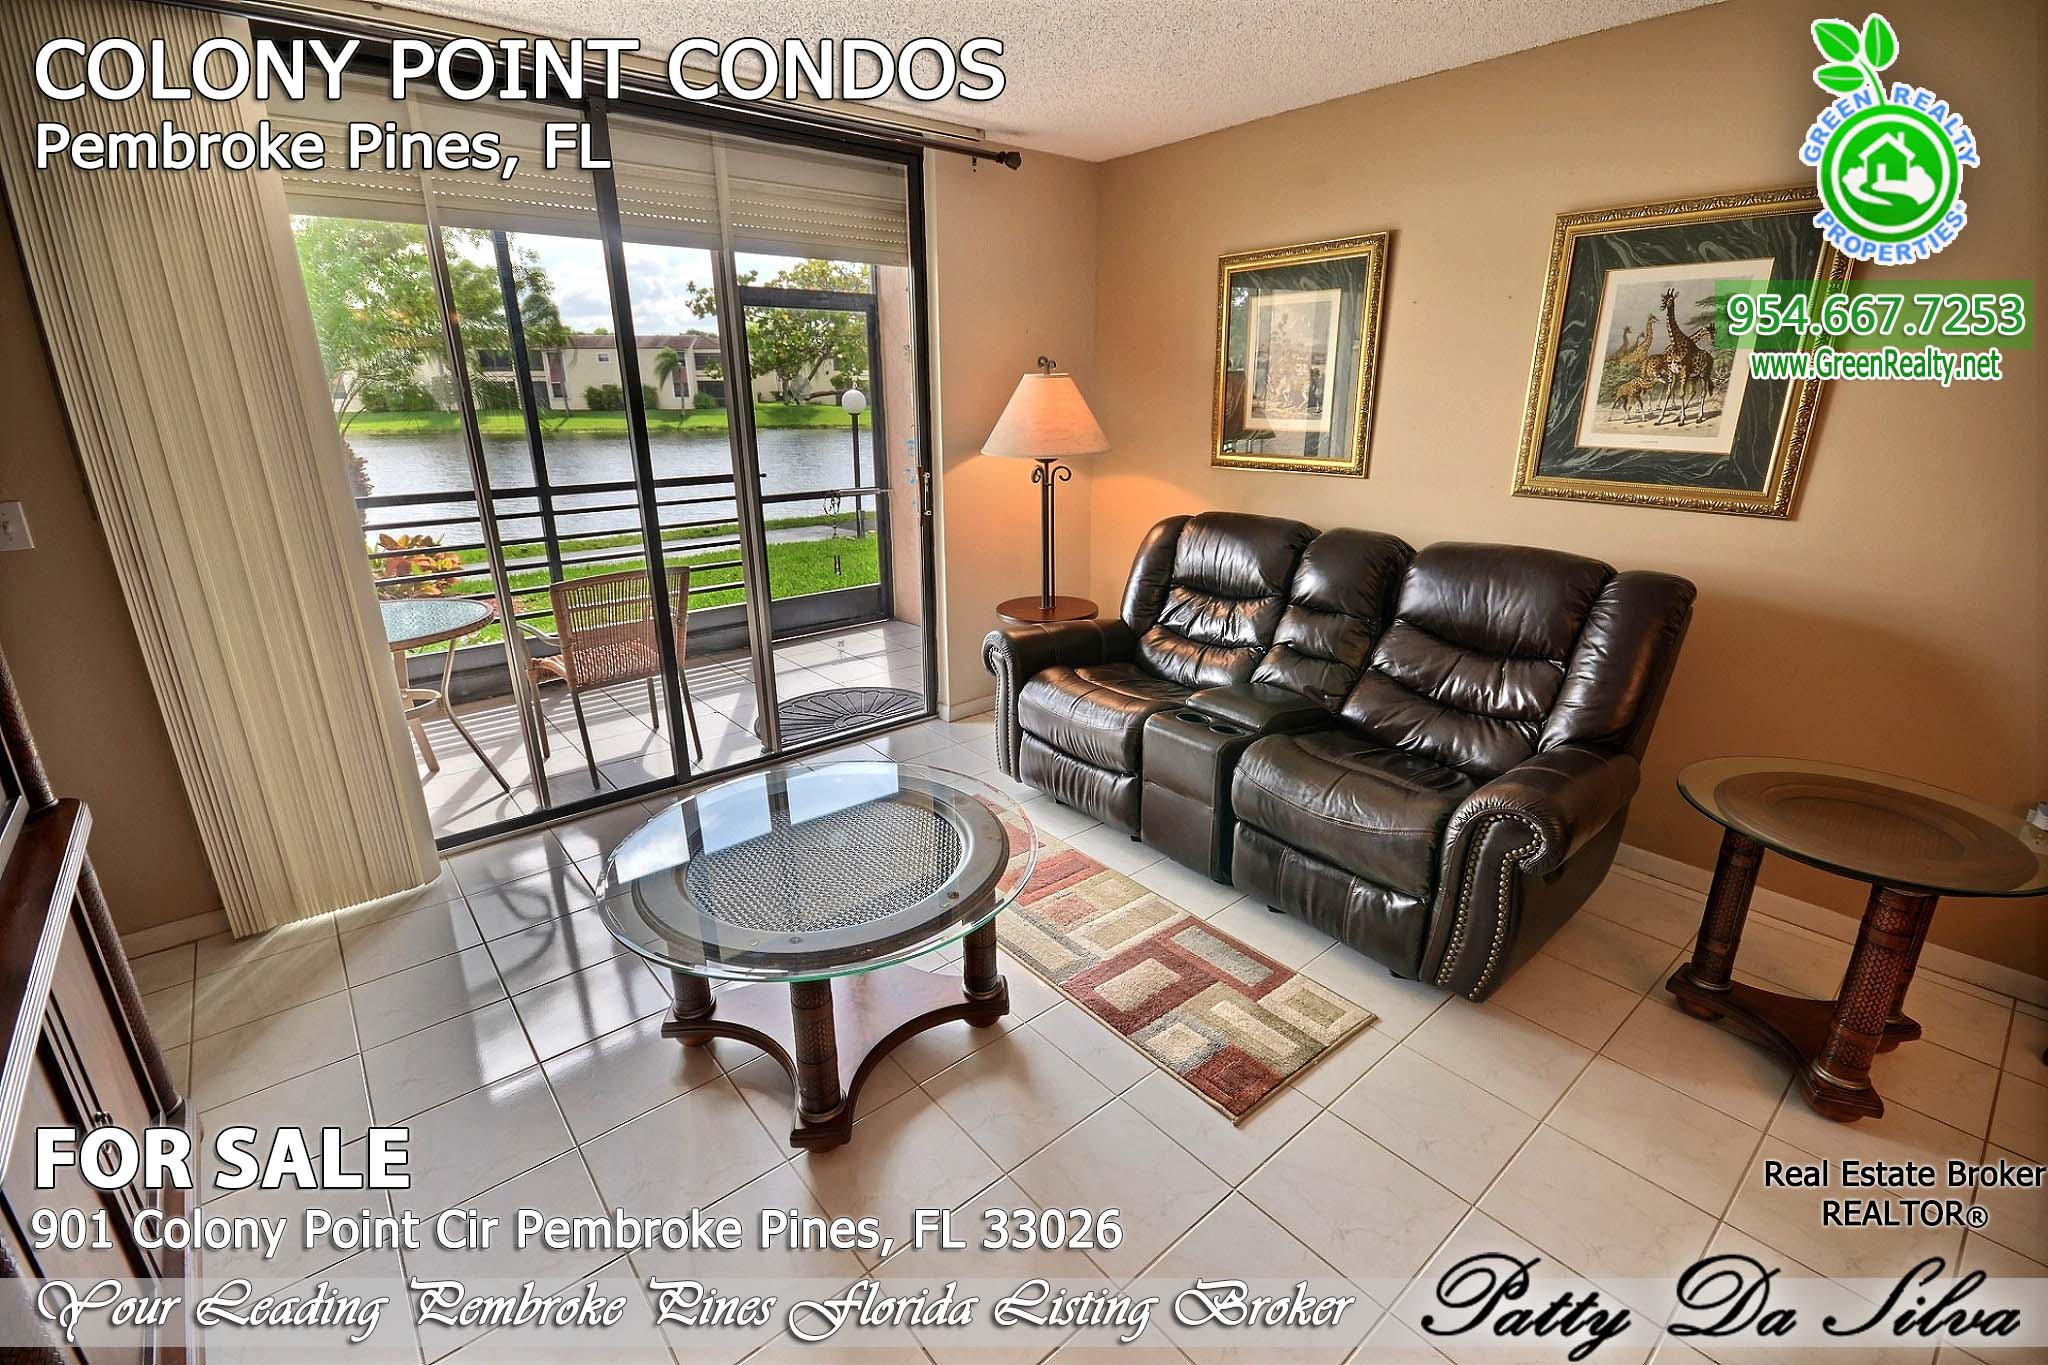 901 Colony Point Cir, Unit 112 - Pembroke Pines Homes For Sale (8)